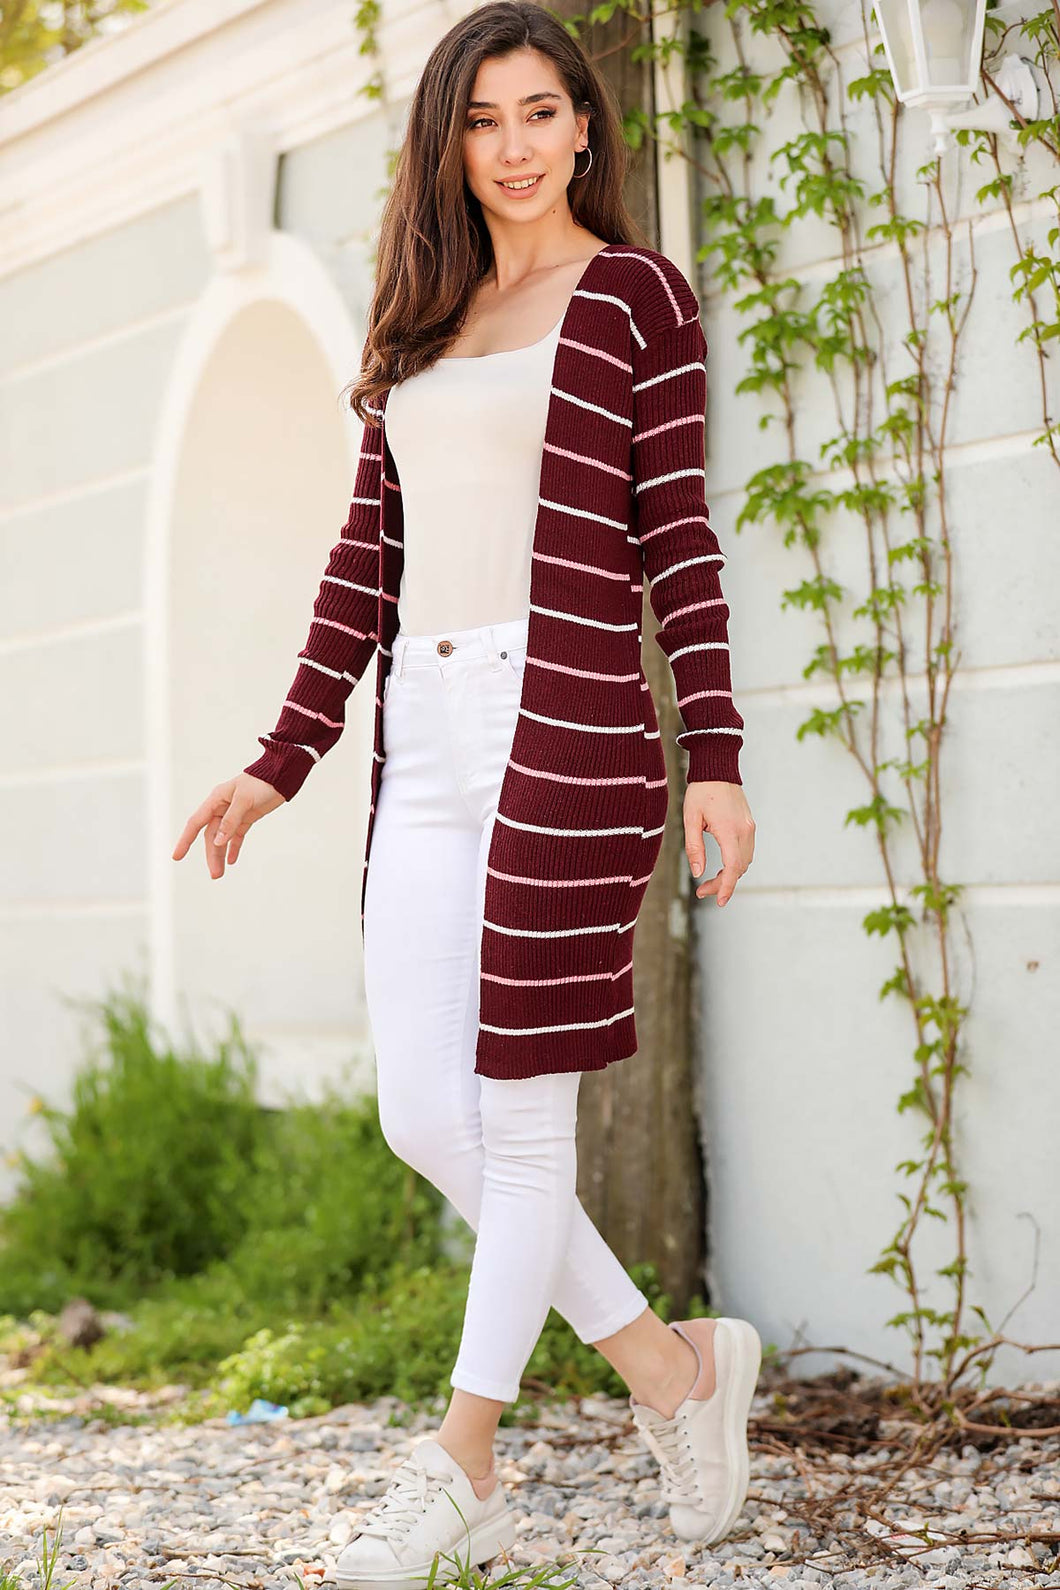 Women's Striped Claret Red Cardigan